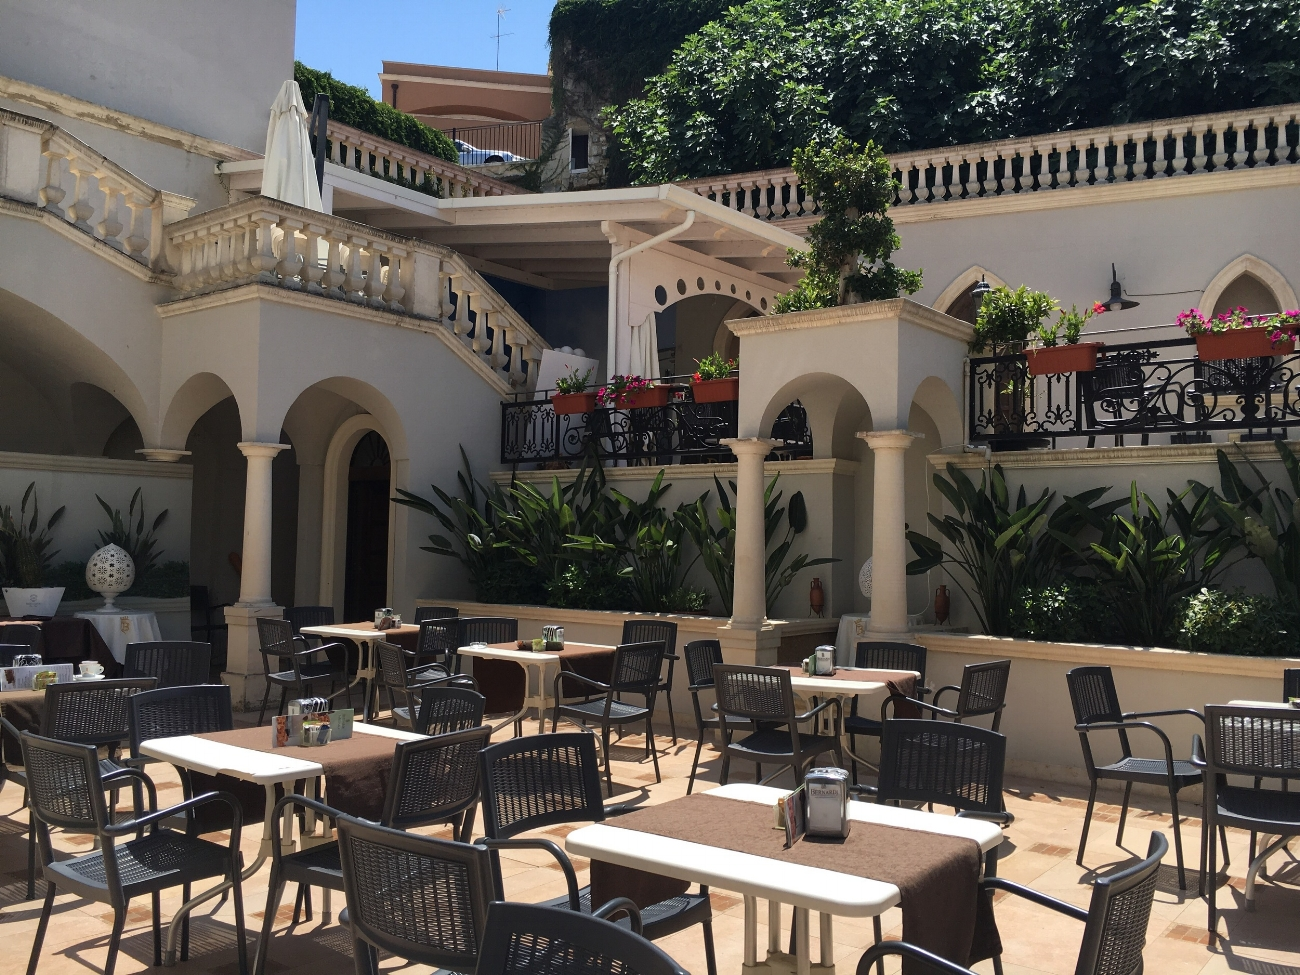 ..and stay here for a few hours to top up your tan in this crazy courtyard.